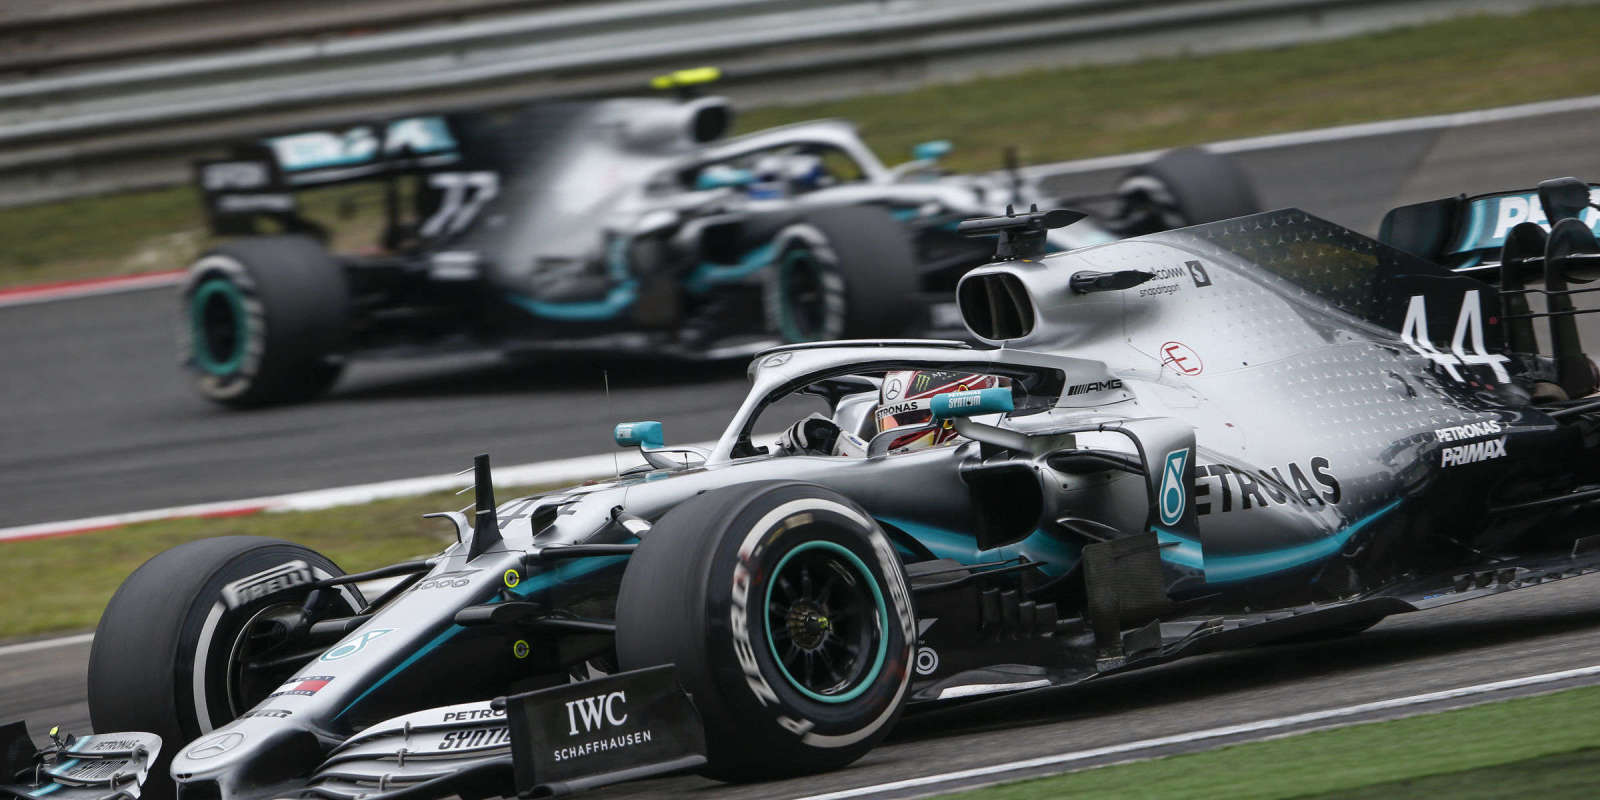 Images from the 2019 Formula 1 Chinese Grand Prix